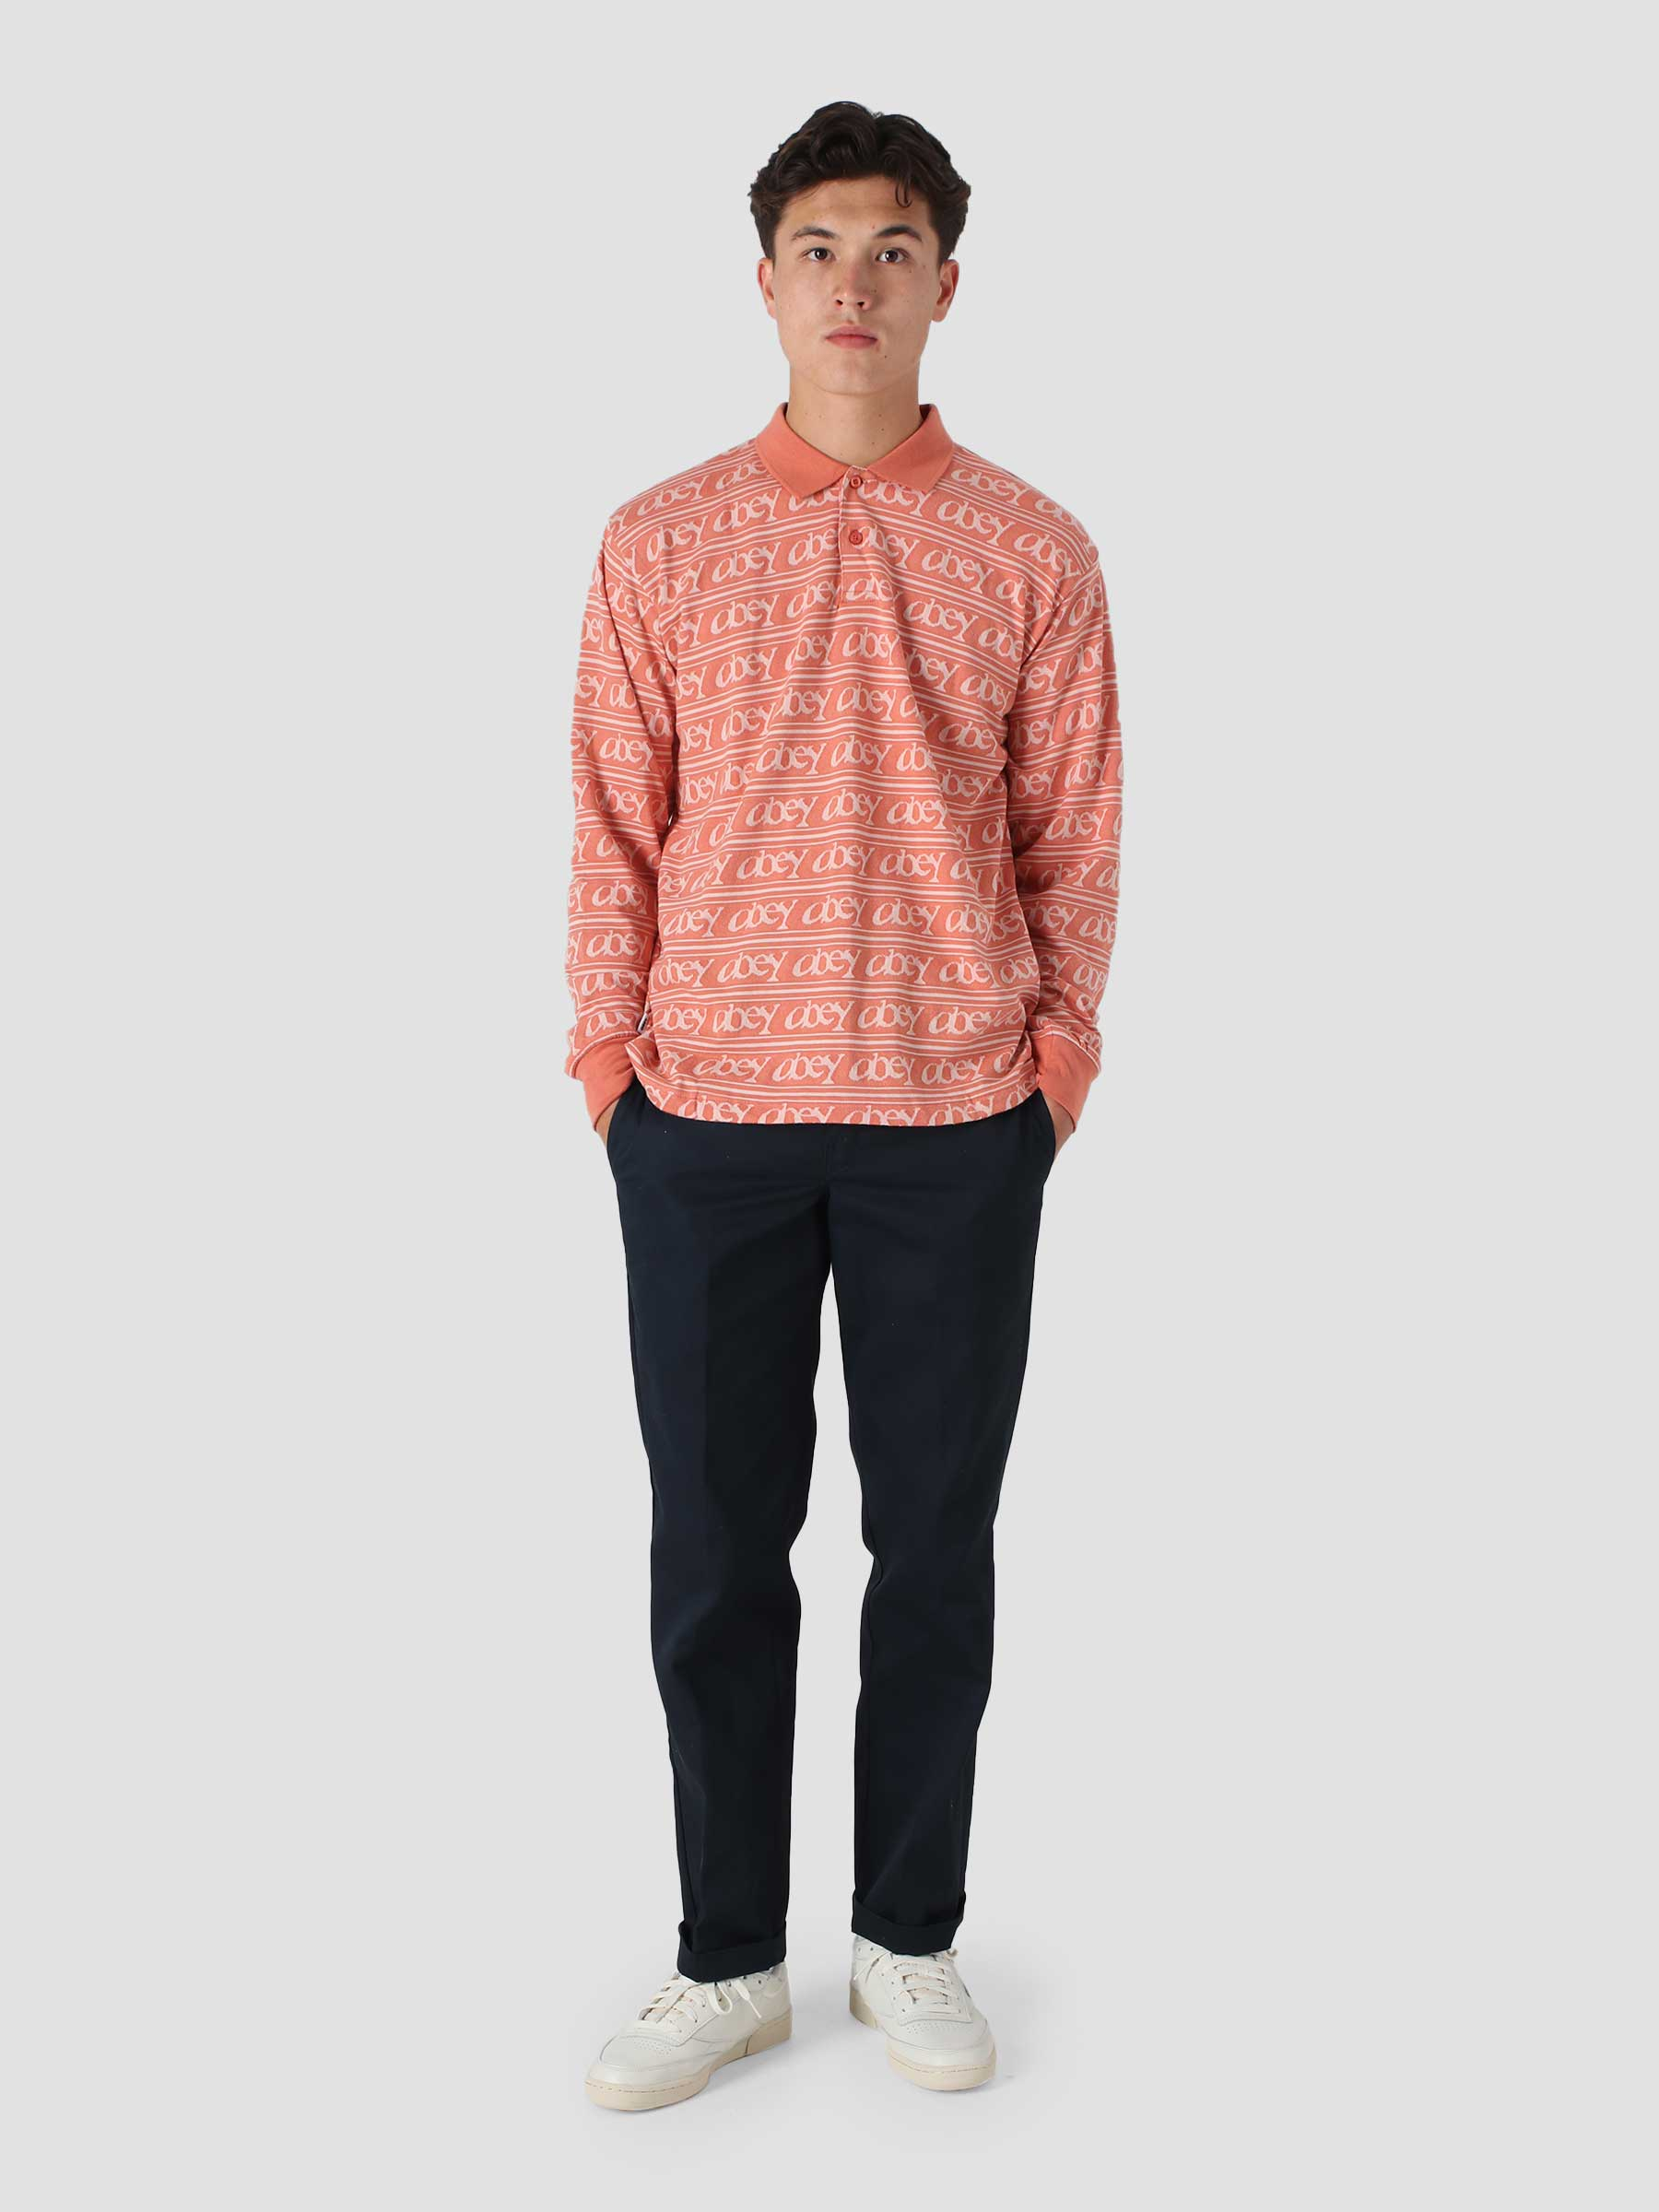 Wergner Jacquard Polo T-Shirt Ls Longsleeve Polo Copper Coin Multi 131040042